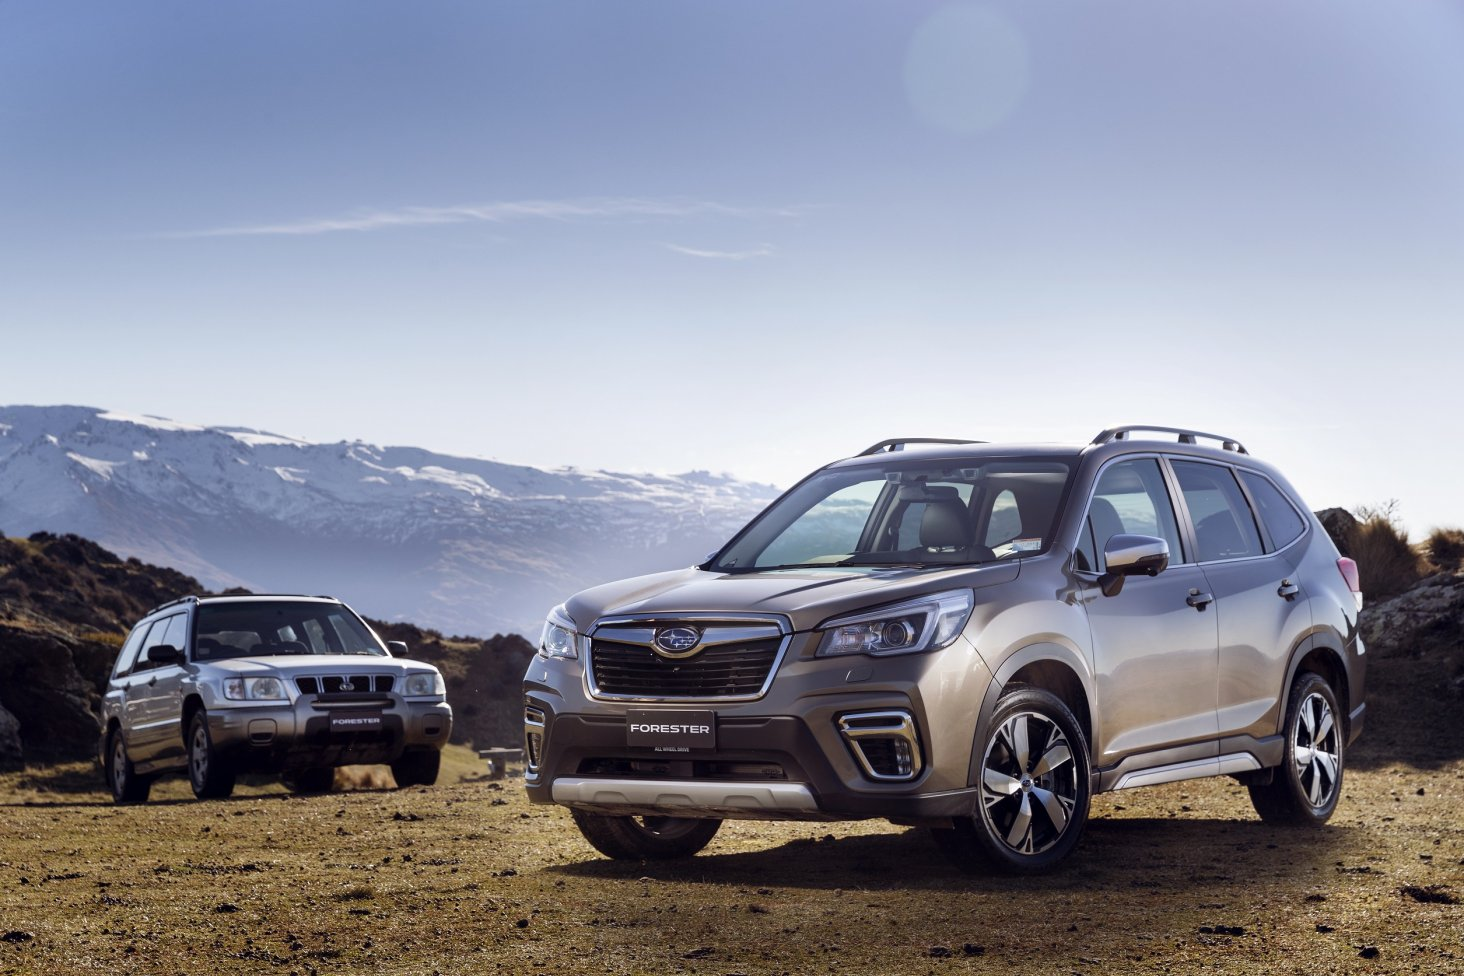 The first Subaru Forester model was launched in New Zealand in 1997 (left) and 21 years later the fifth generation Forester is upgrading families' fun.